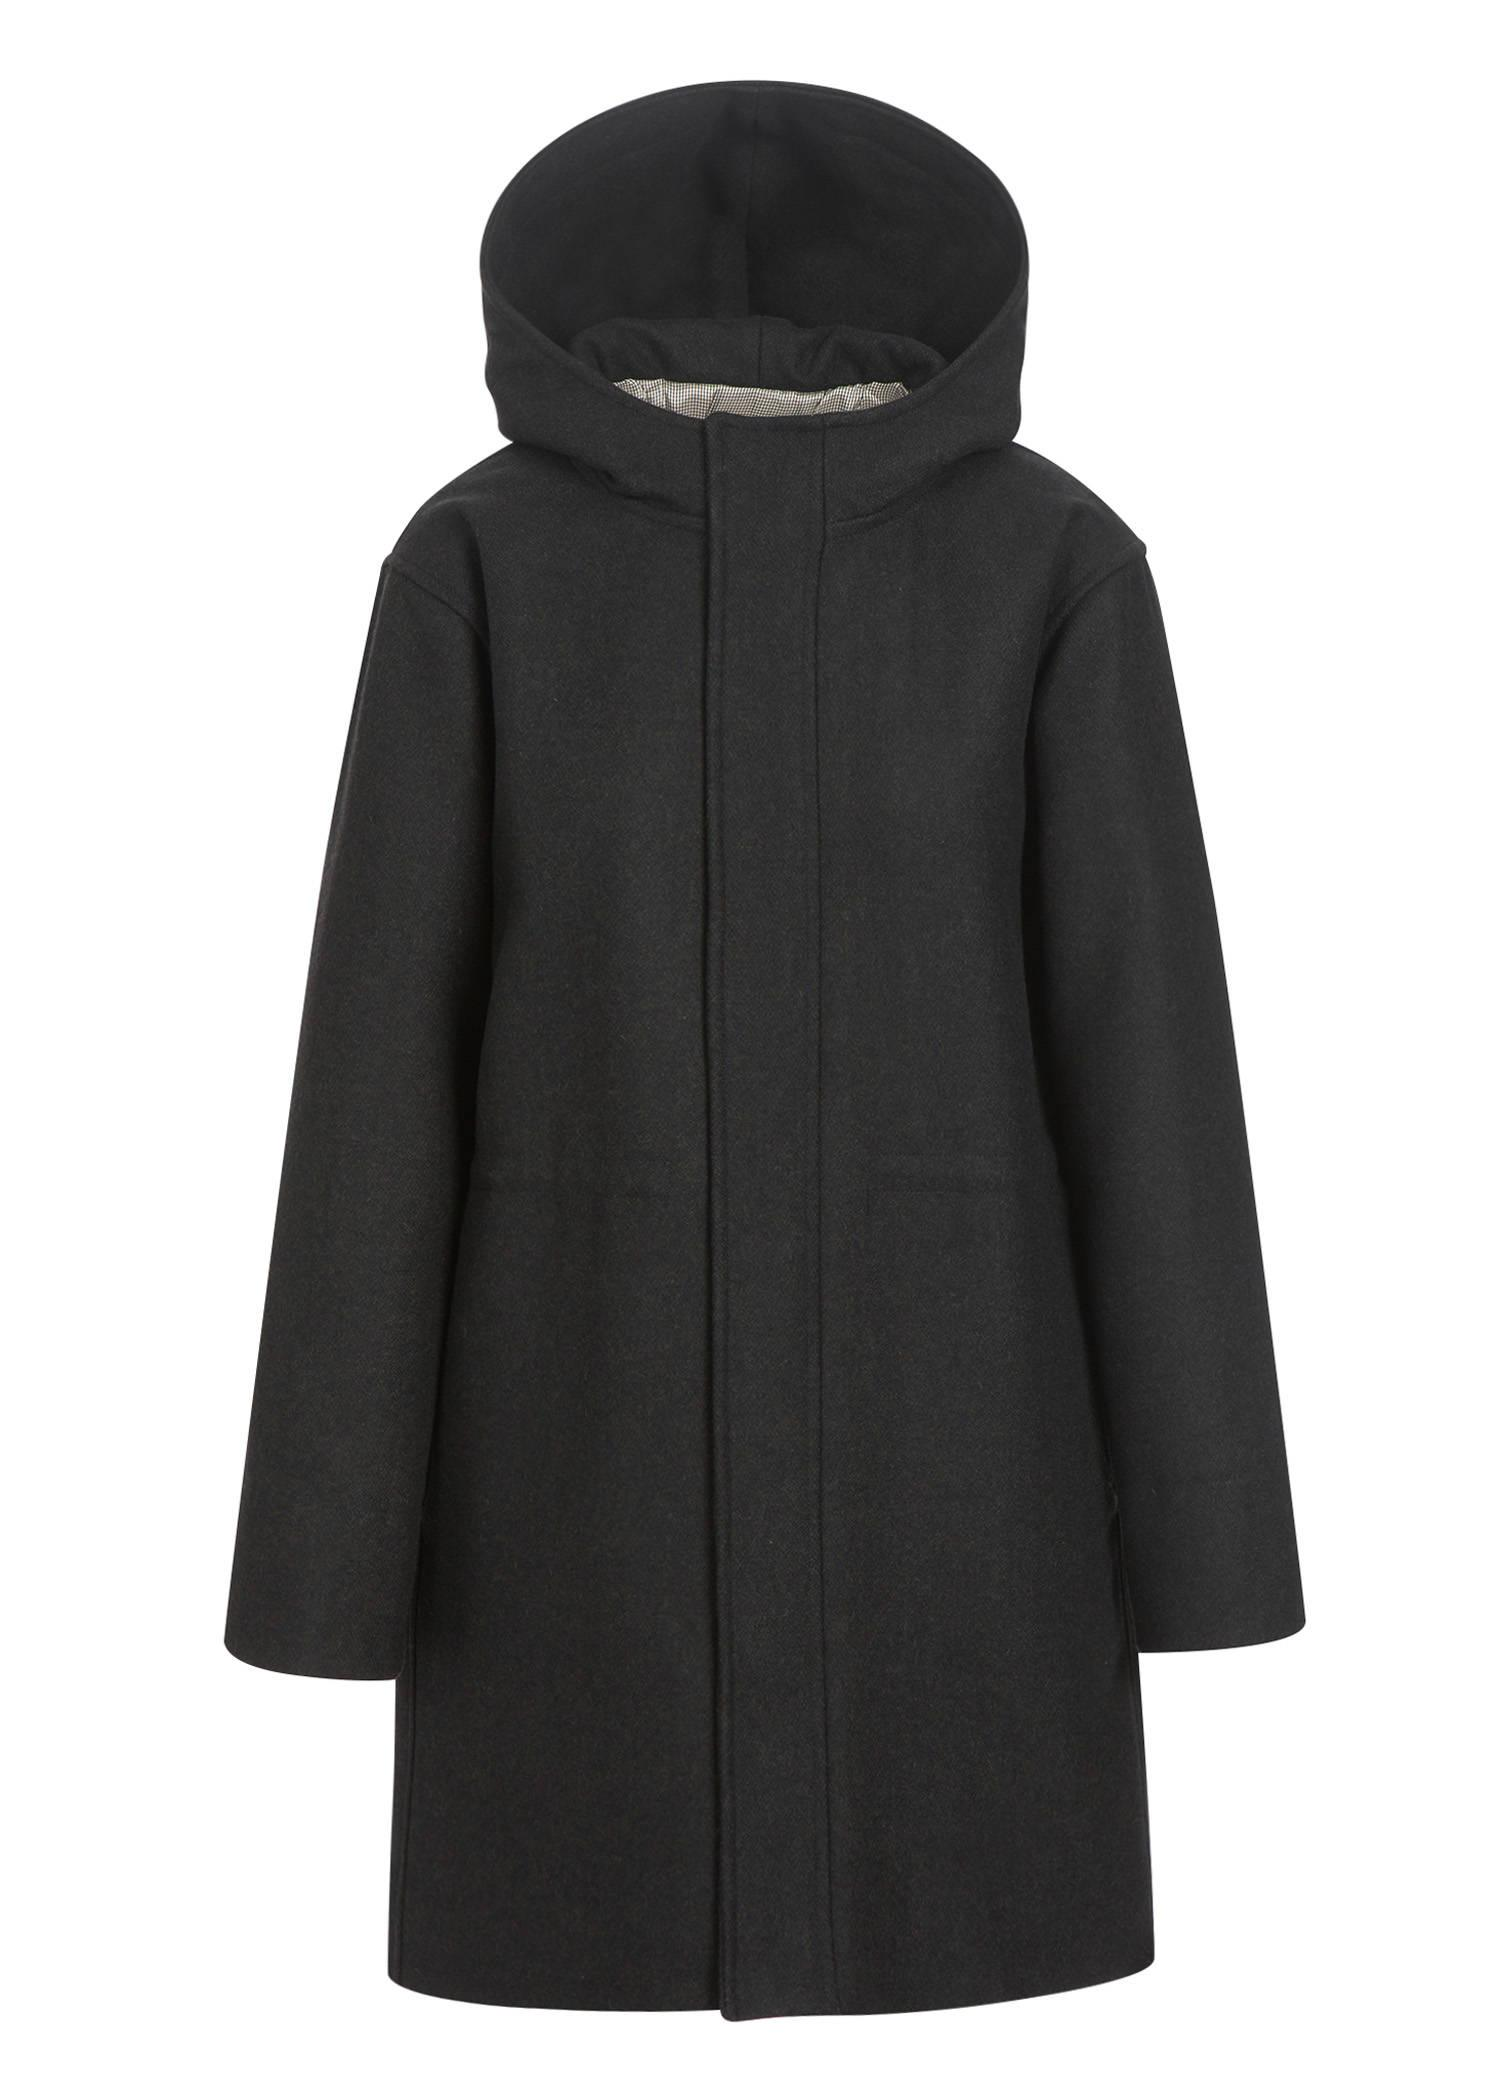 A.p.c. India Parka In Heathered Charcoal Gray